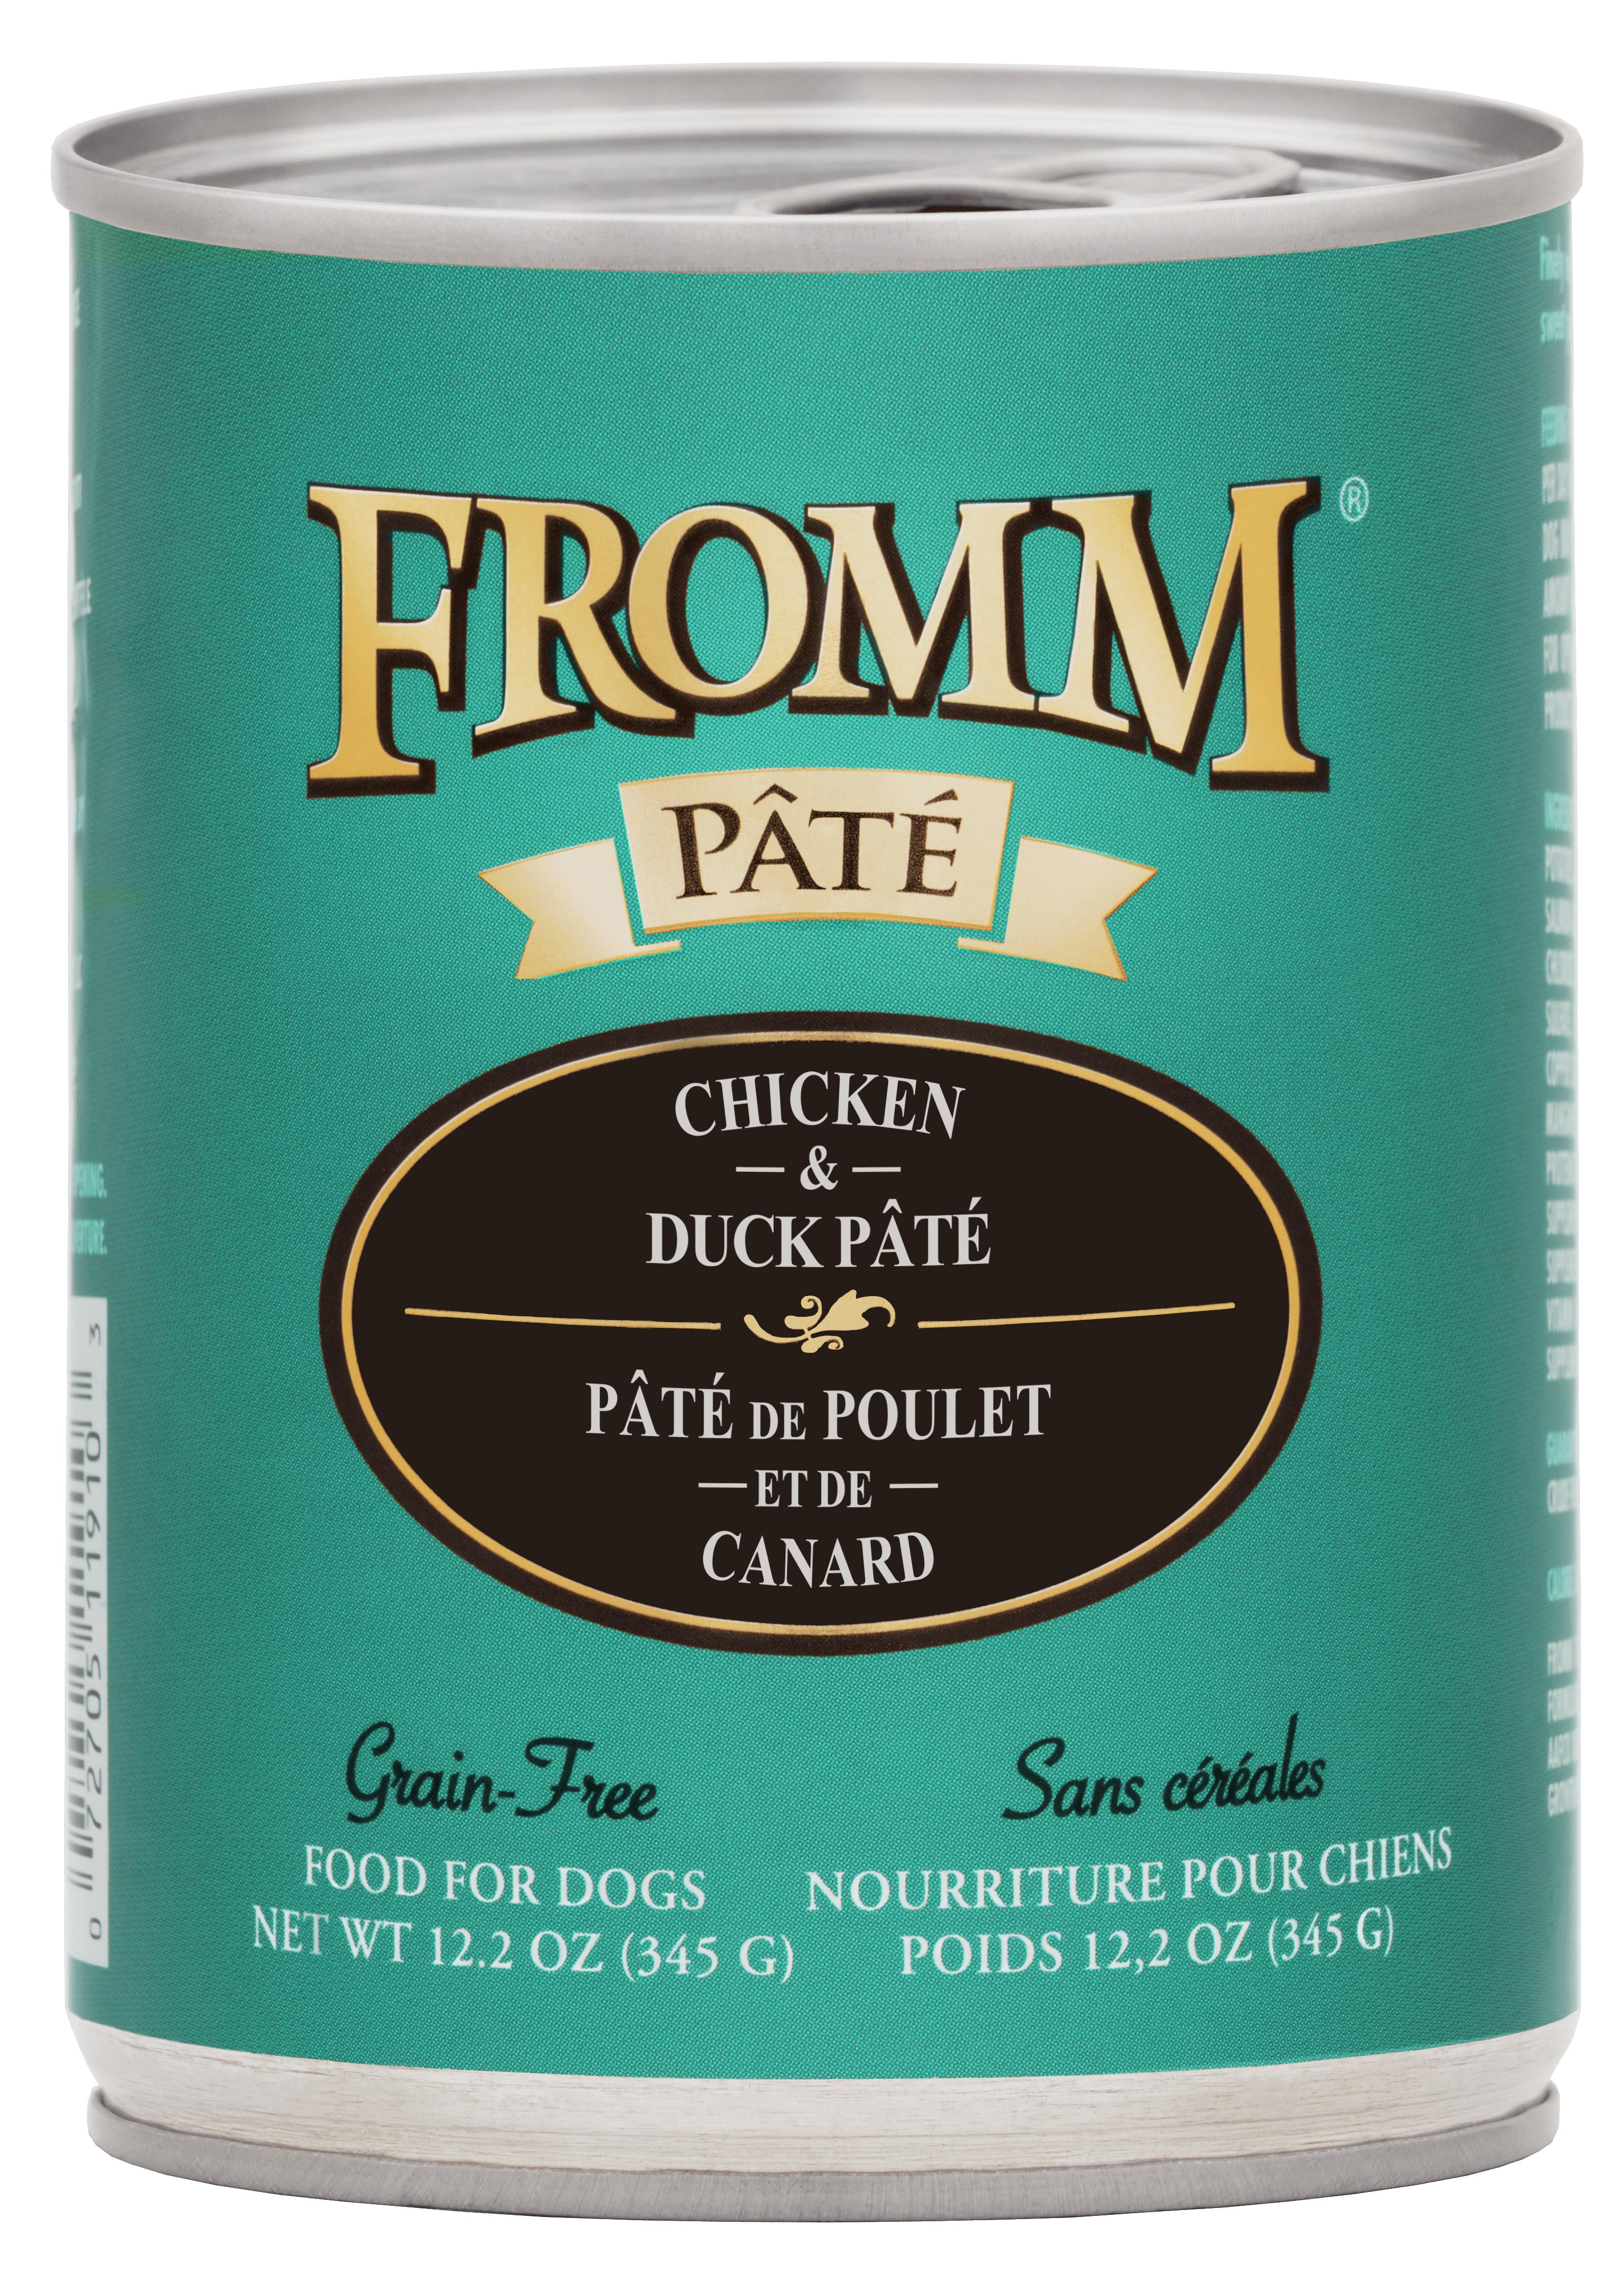 Fromm Chicken & Duck Pate Canned Dog Food, 12.2-oz